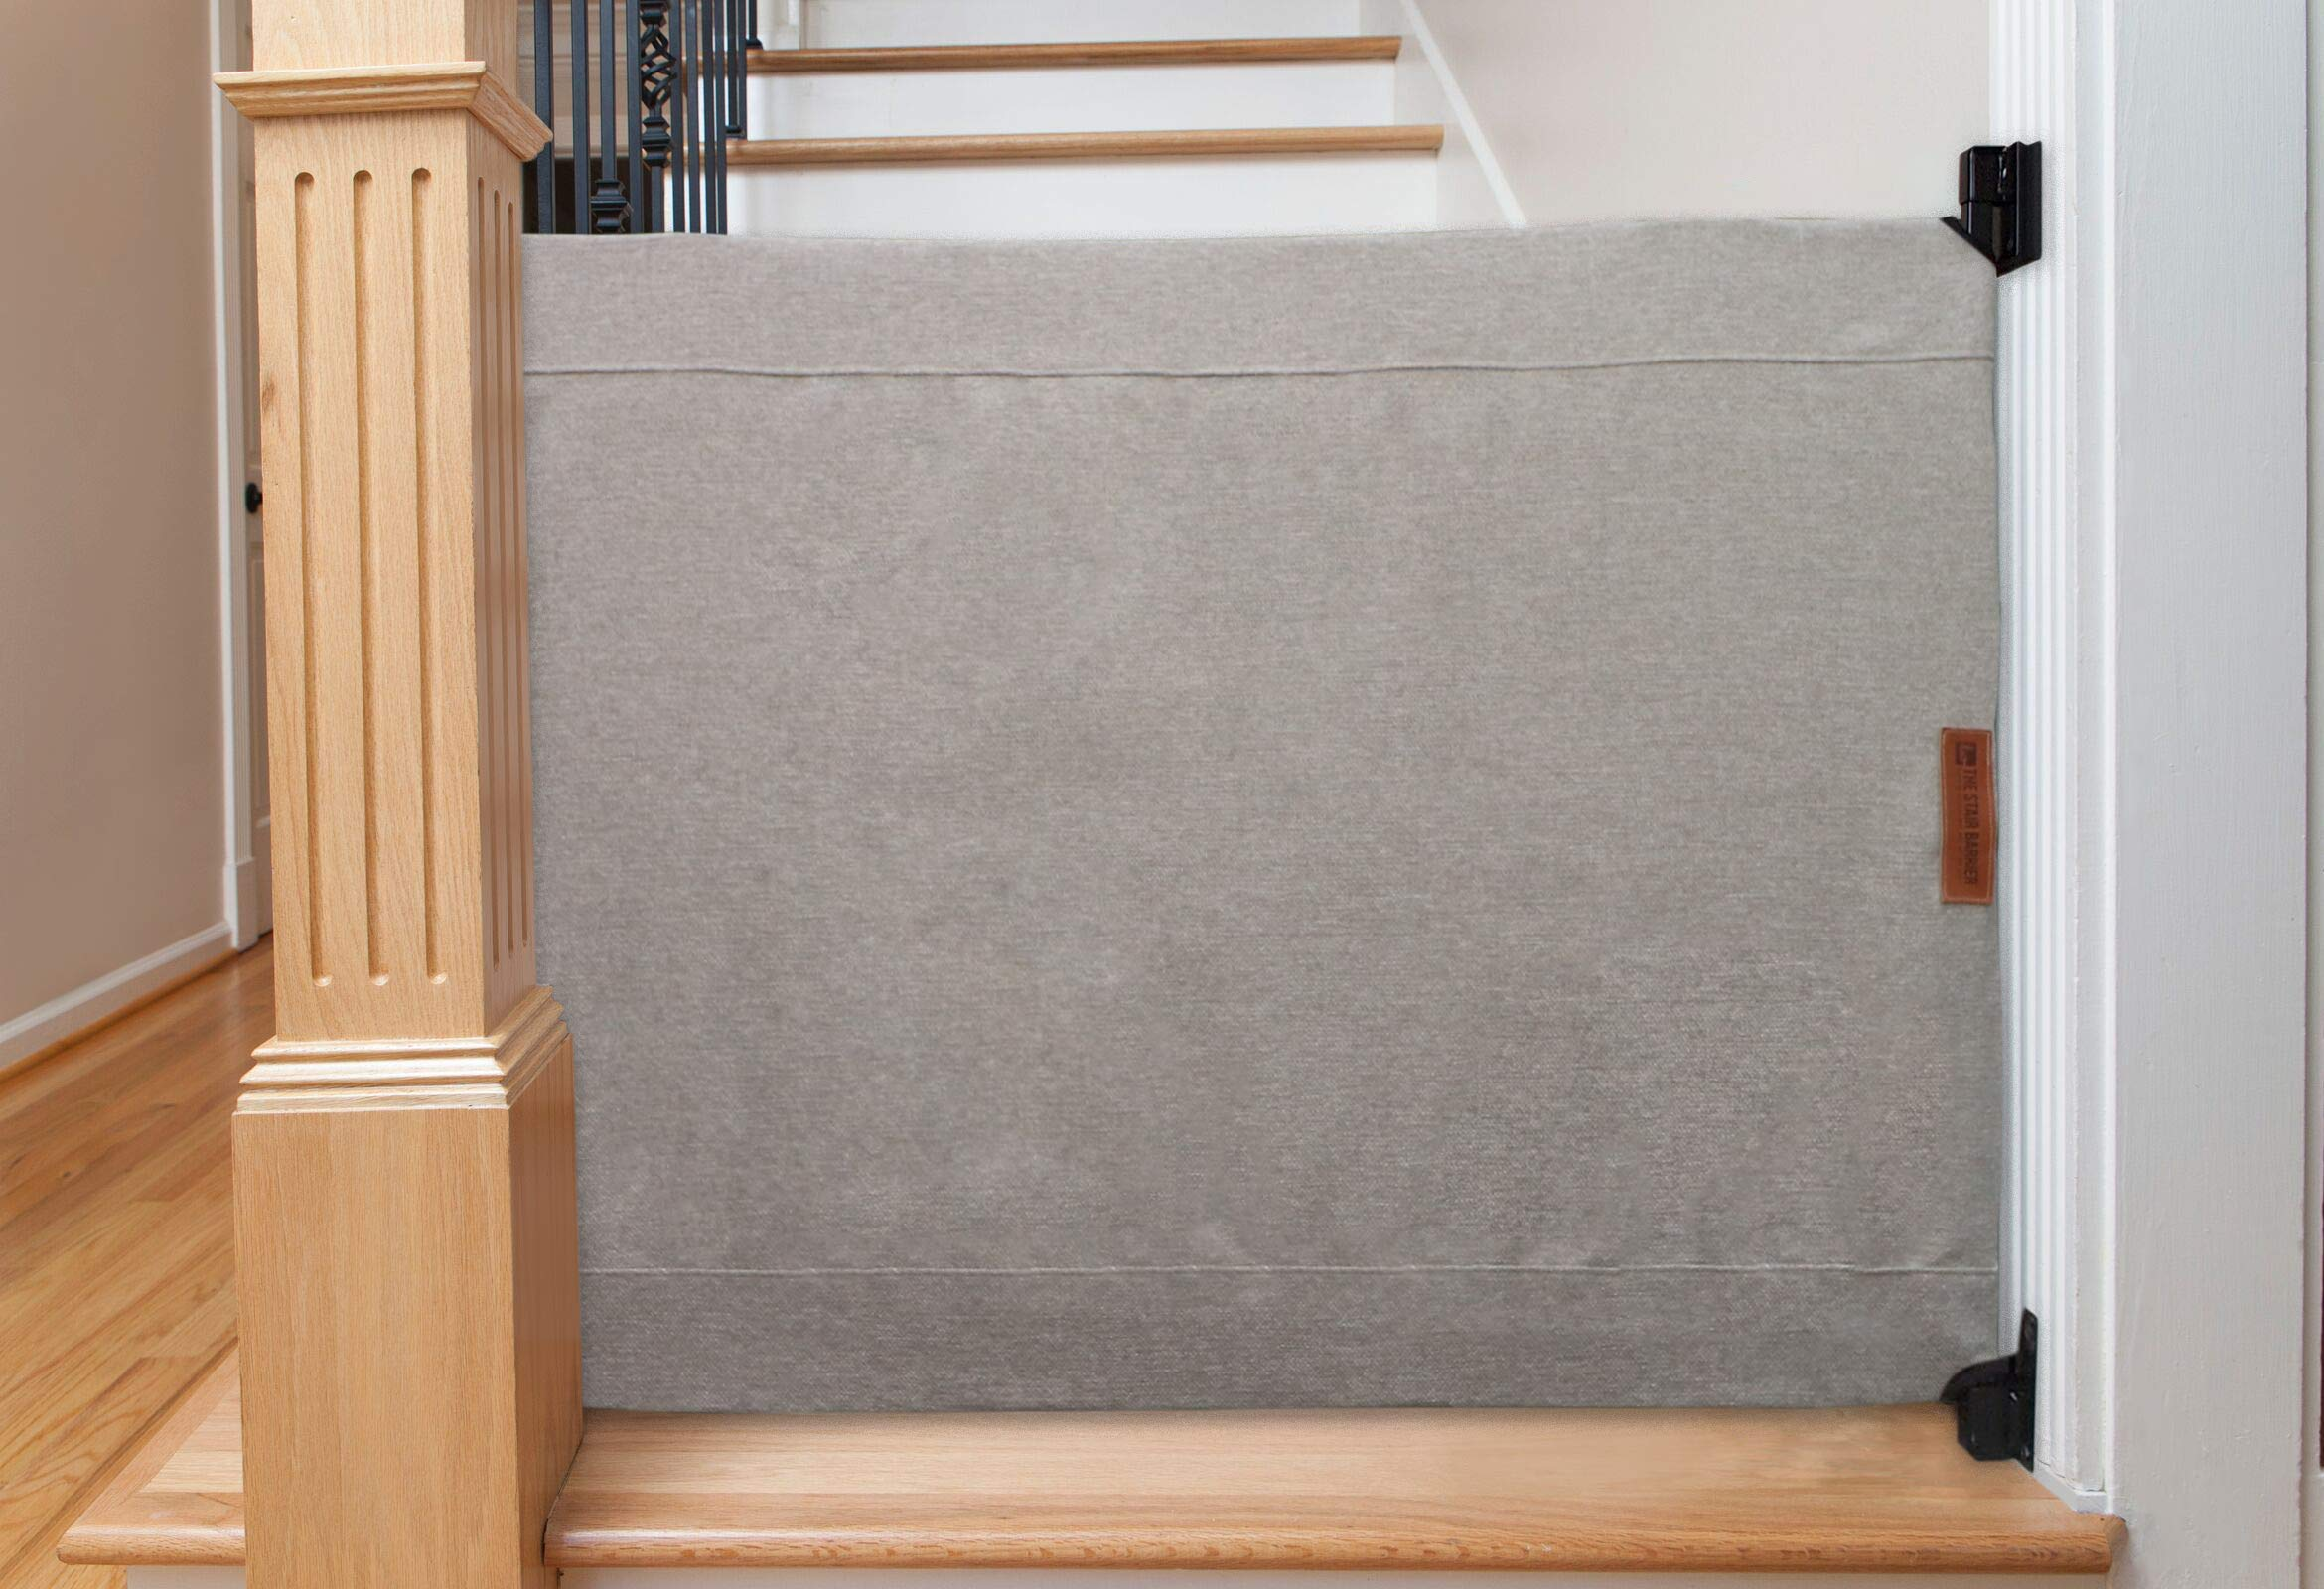 The Stair Barrier Baby and Pet Gate: Banister to Wall Baby Gate - Safety Gates for Kids or Dogs - Fabric Baby Gate for Stairs with Banisters - Made in The USA, New 2019 by THE STAIR BARRIER KEEPING CHILDREN AND PETS OFF THE STAIRS (Image #1)